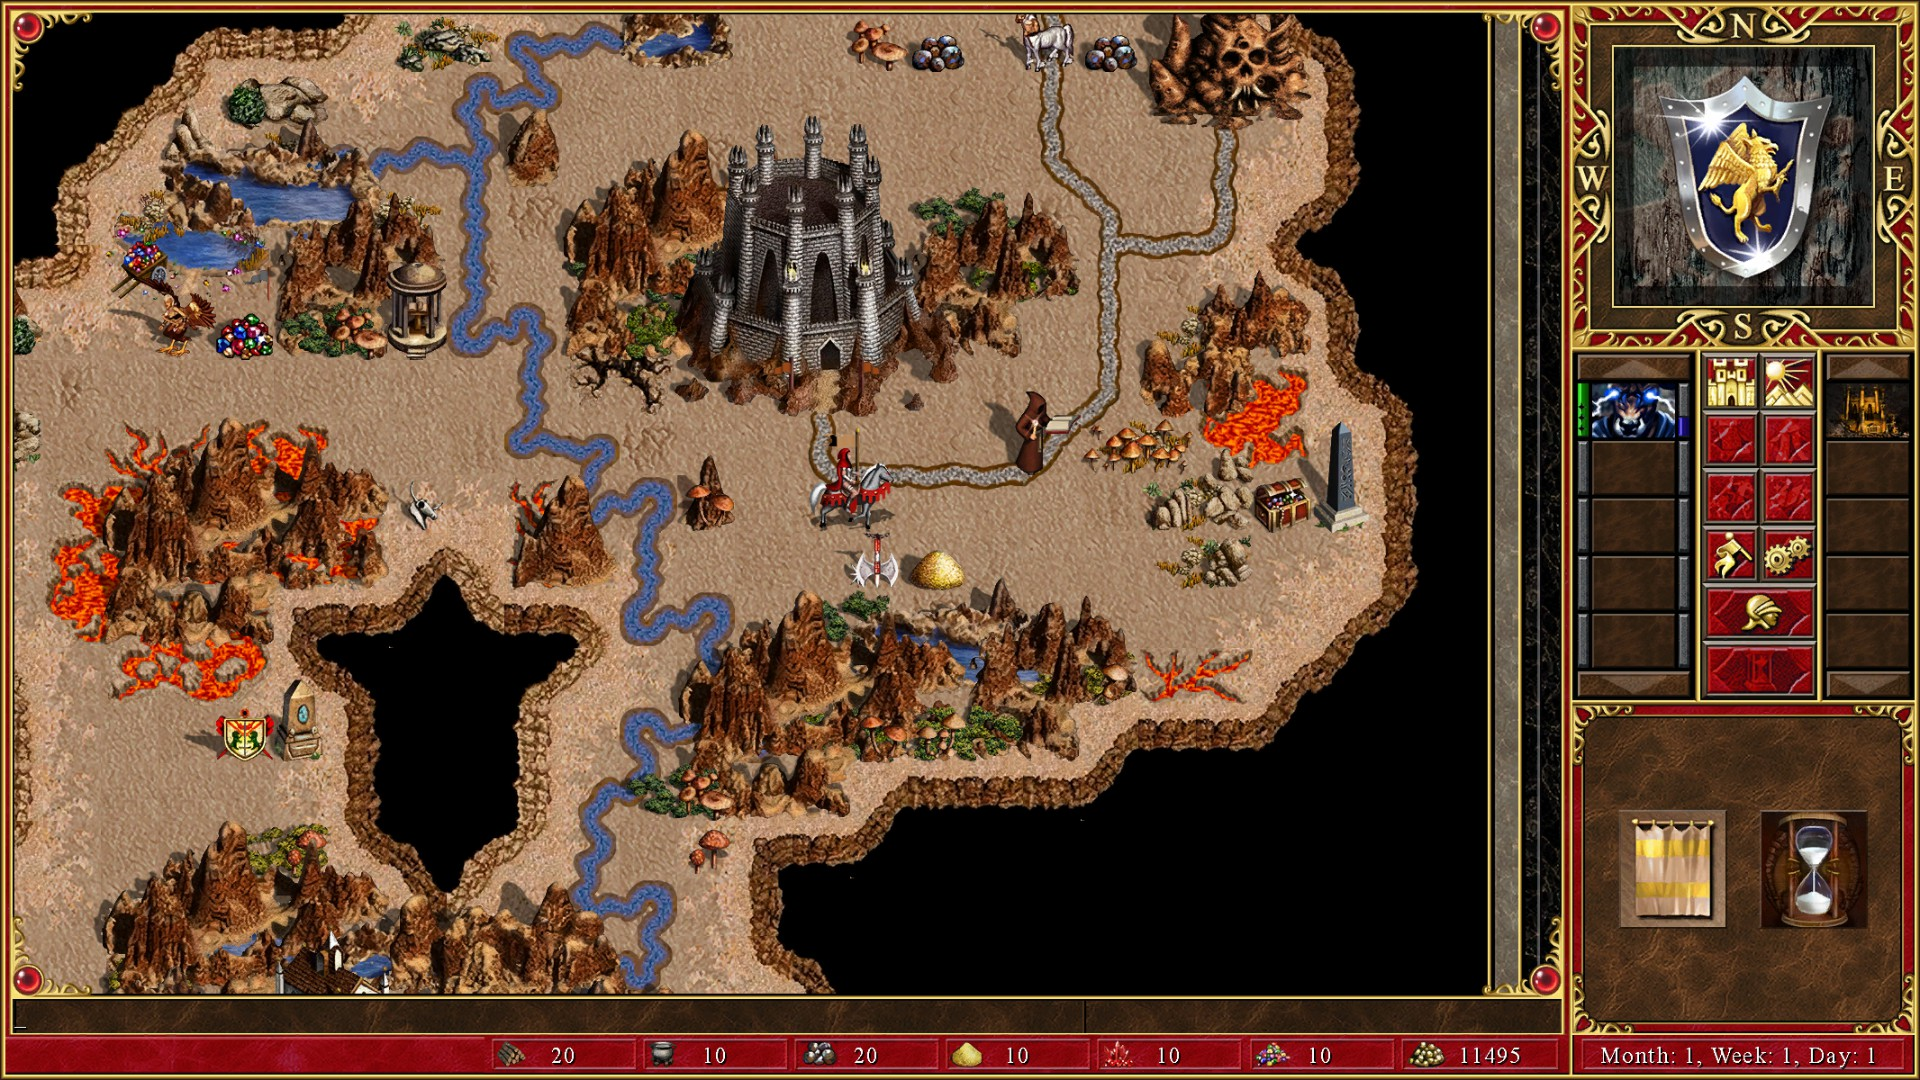 Heroes of might and magic 4 review ign